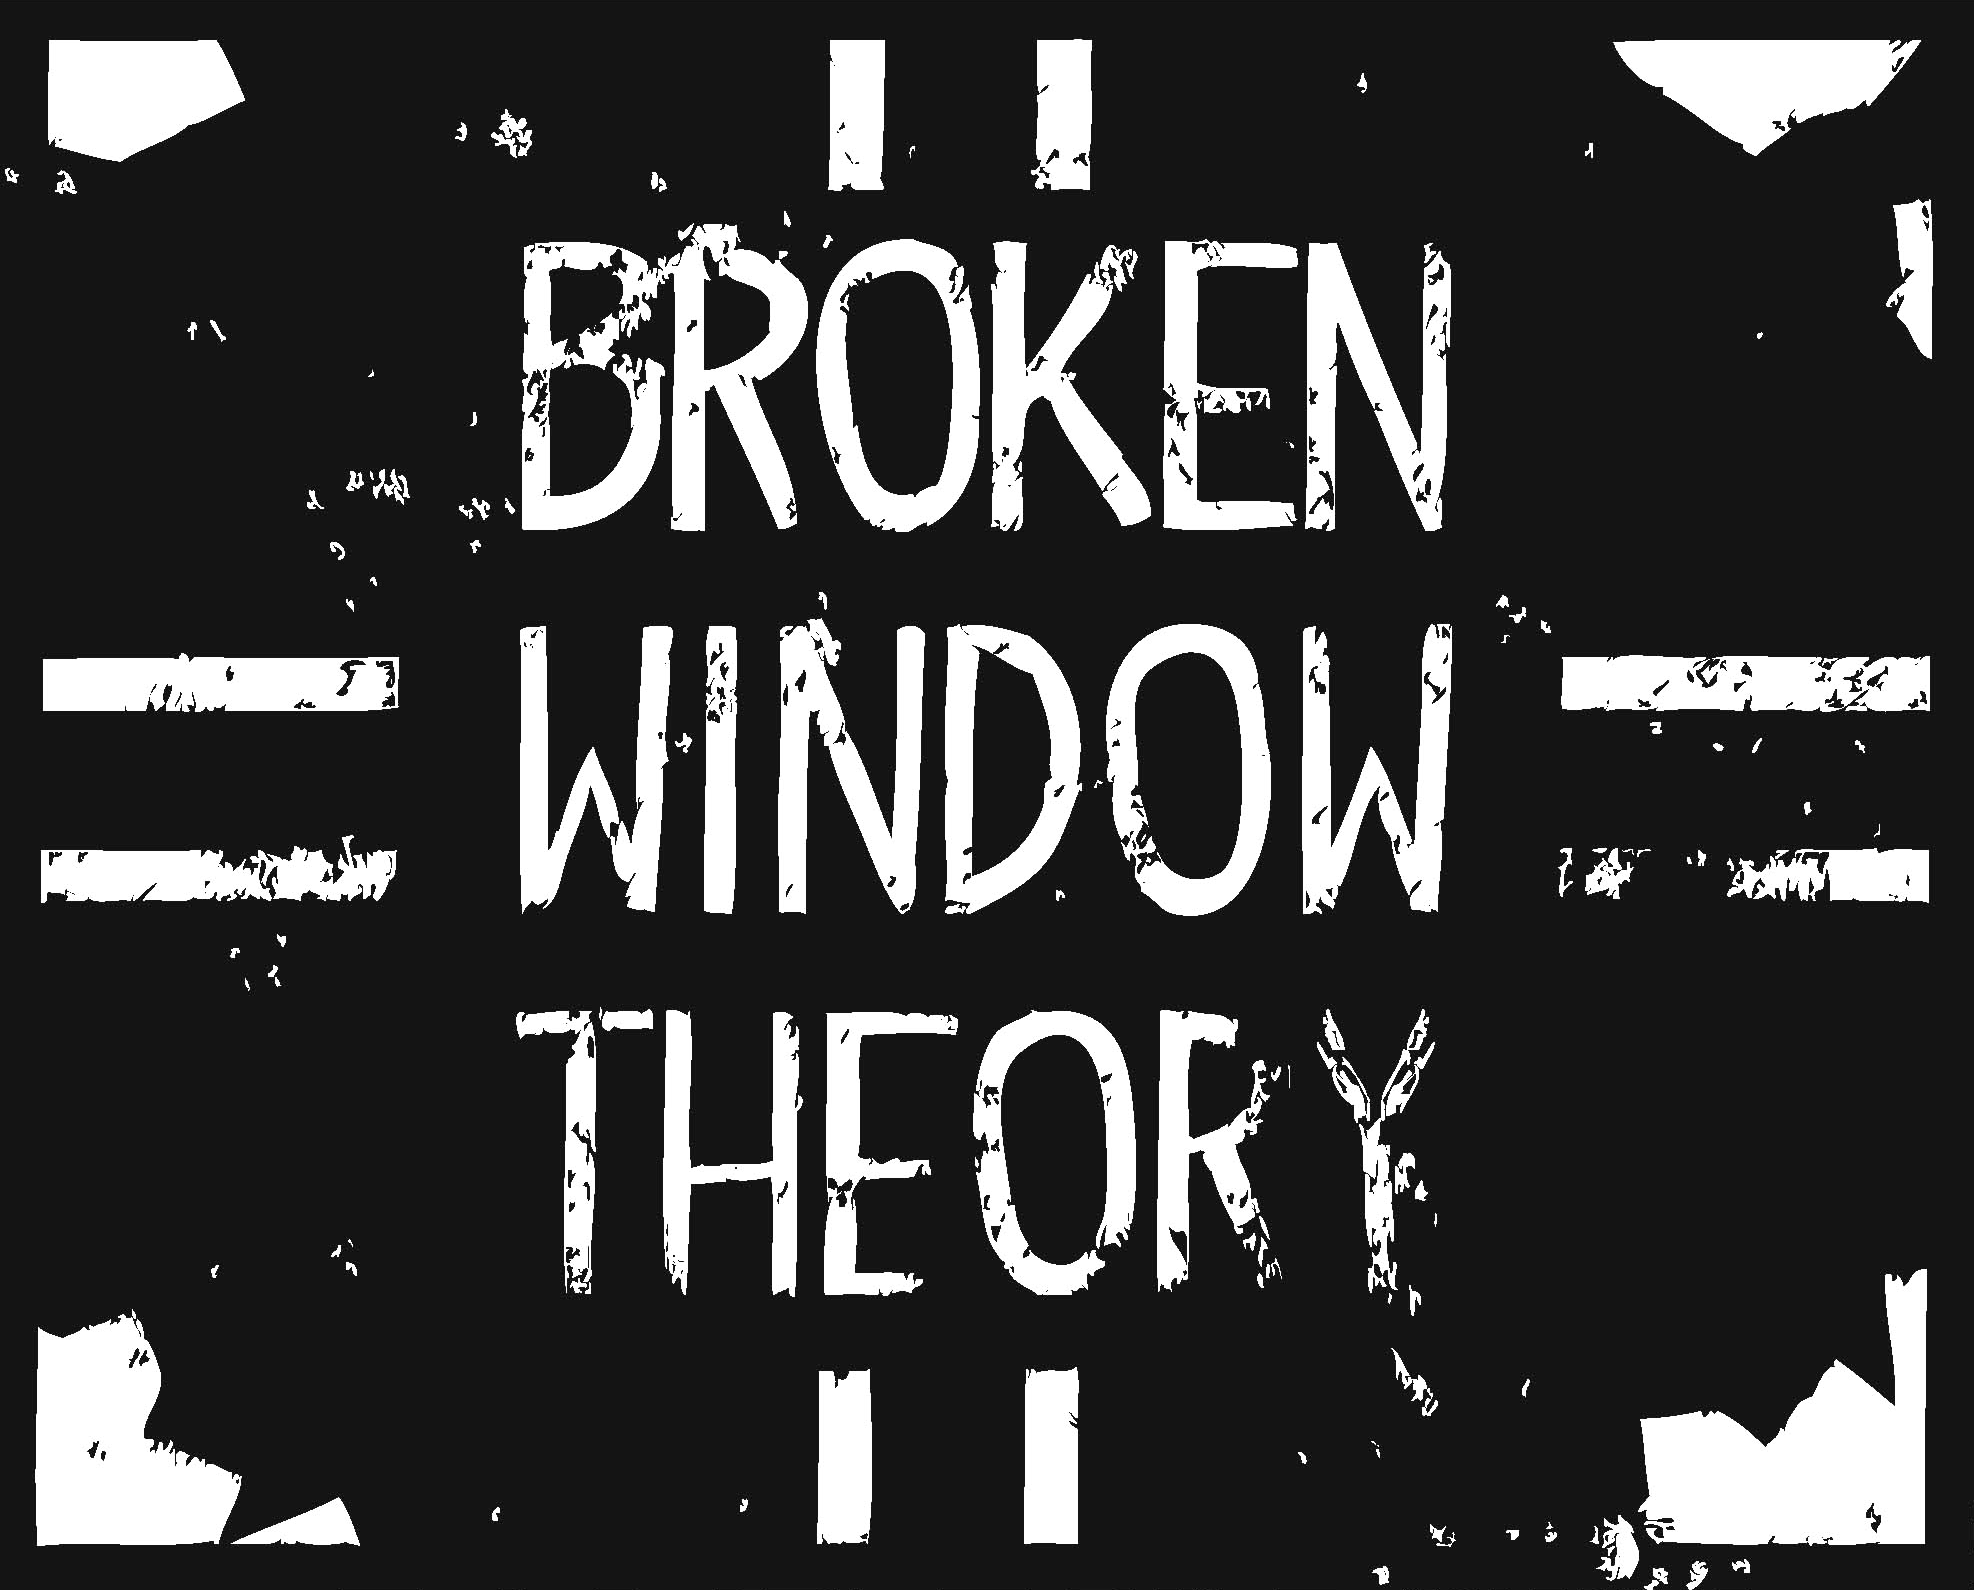 Broken window theory 3